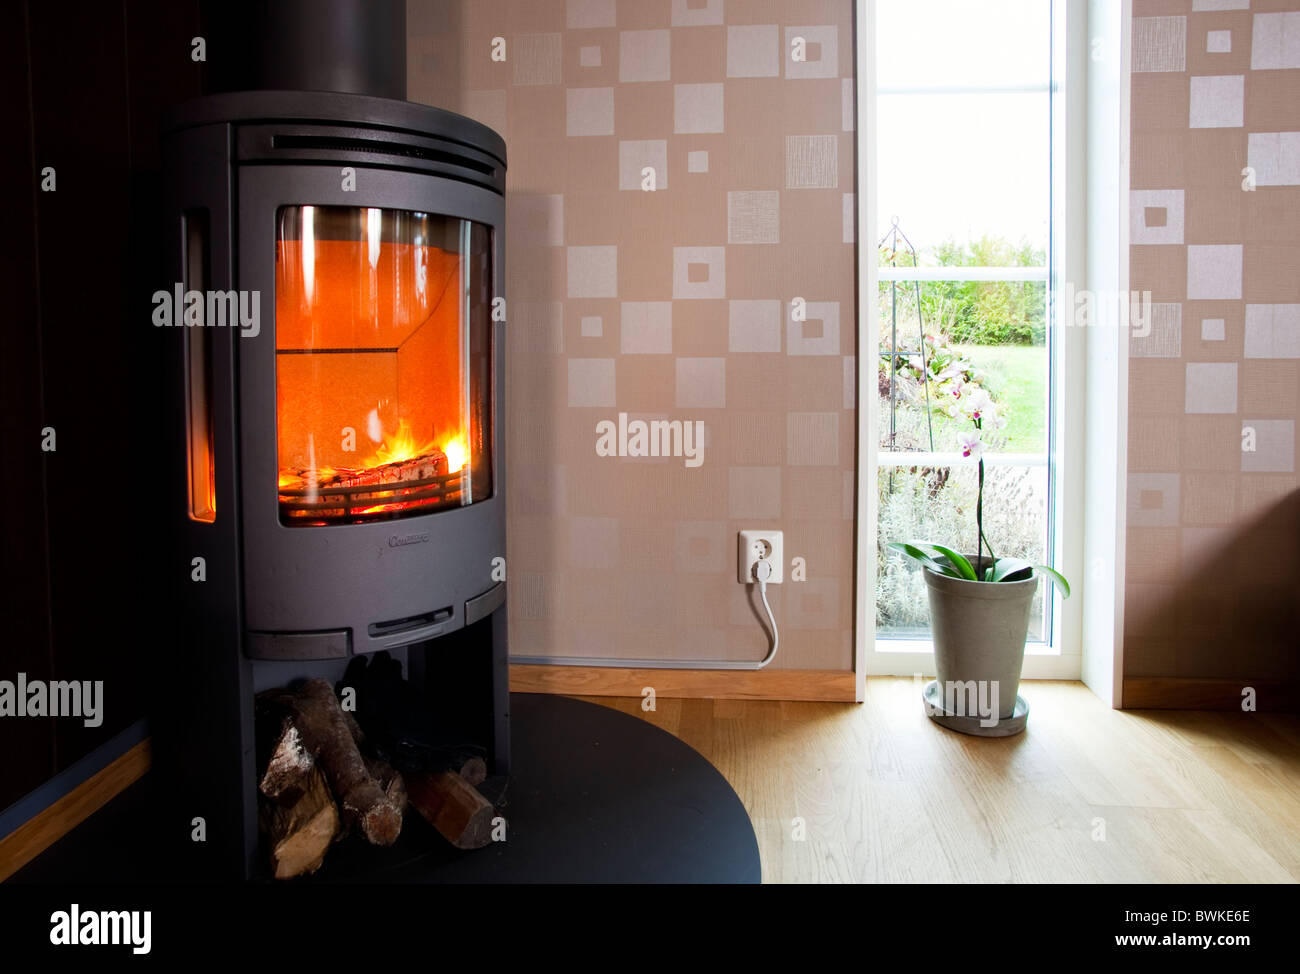 Fireplace in the livingroom,Sweden - Stock Image